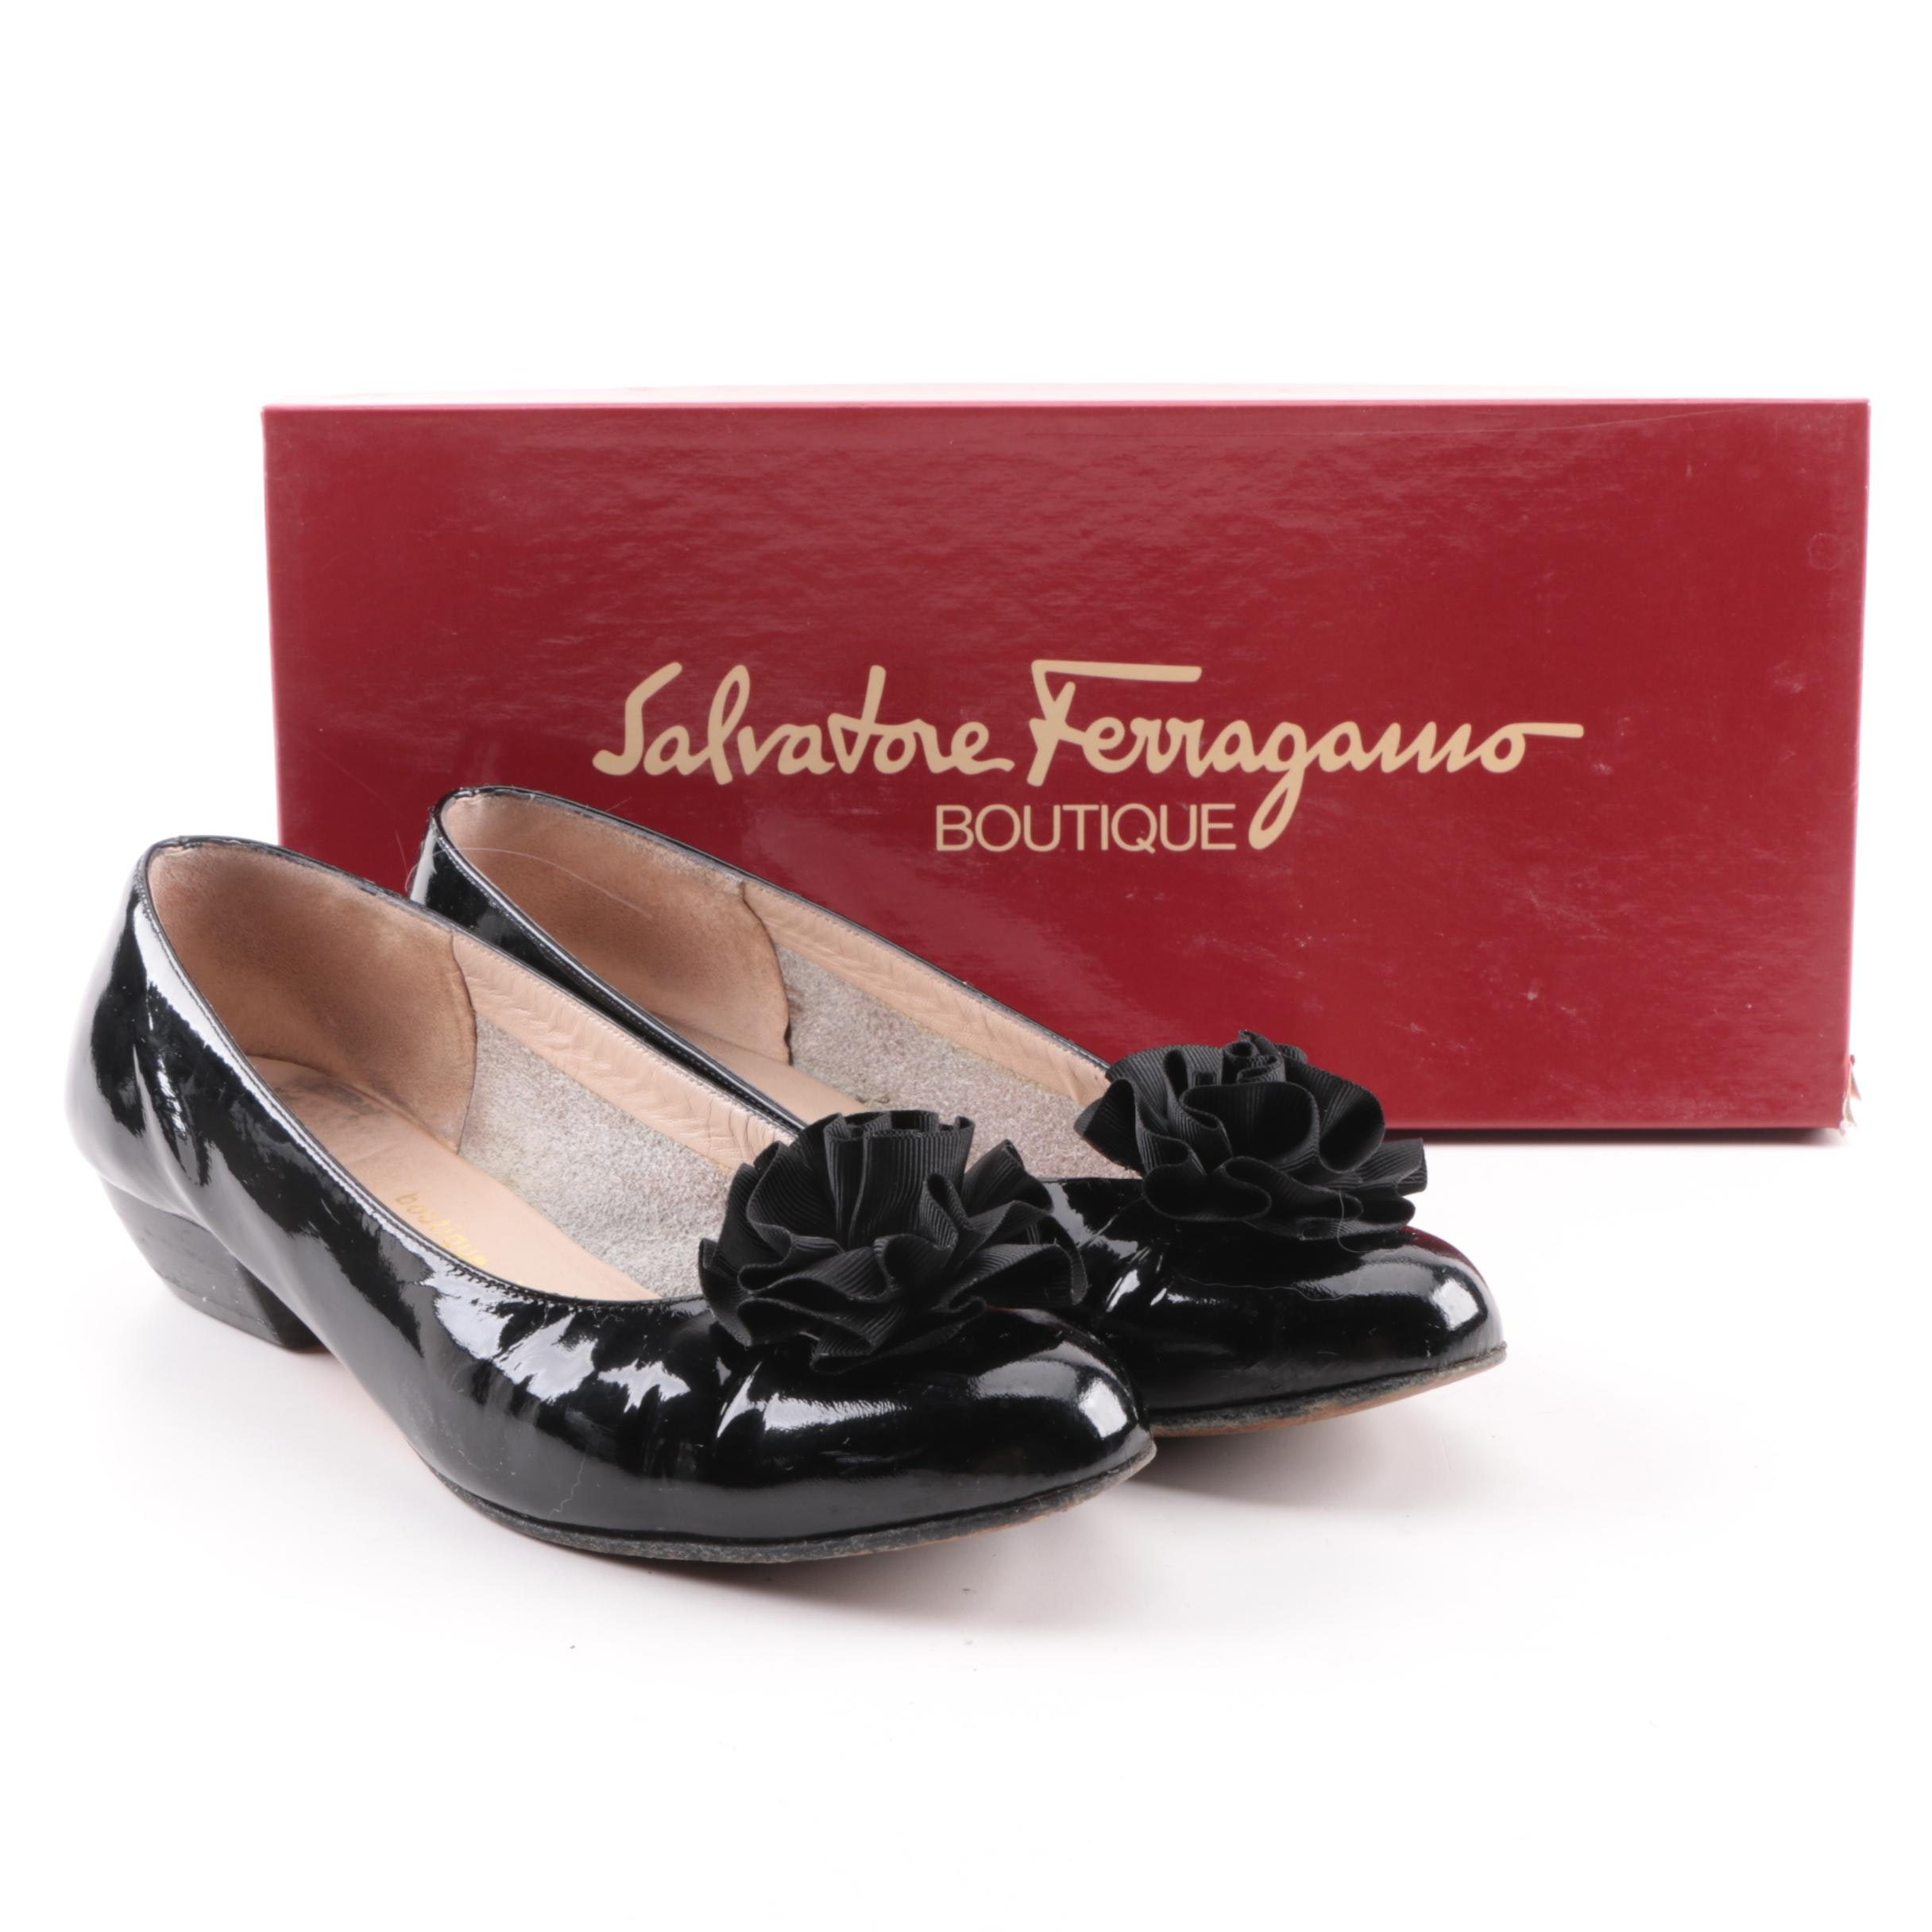 Salvatore Ferragamo Majorette Black Patent Leather Flats with Rosettes